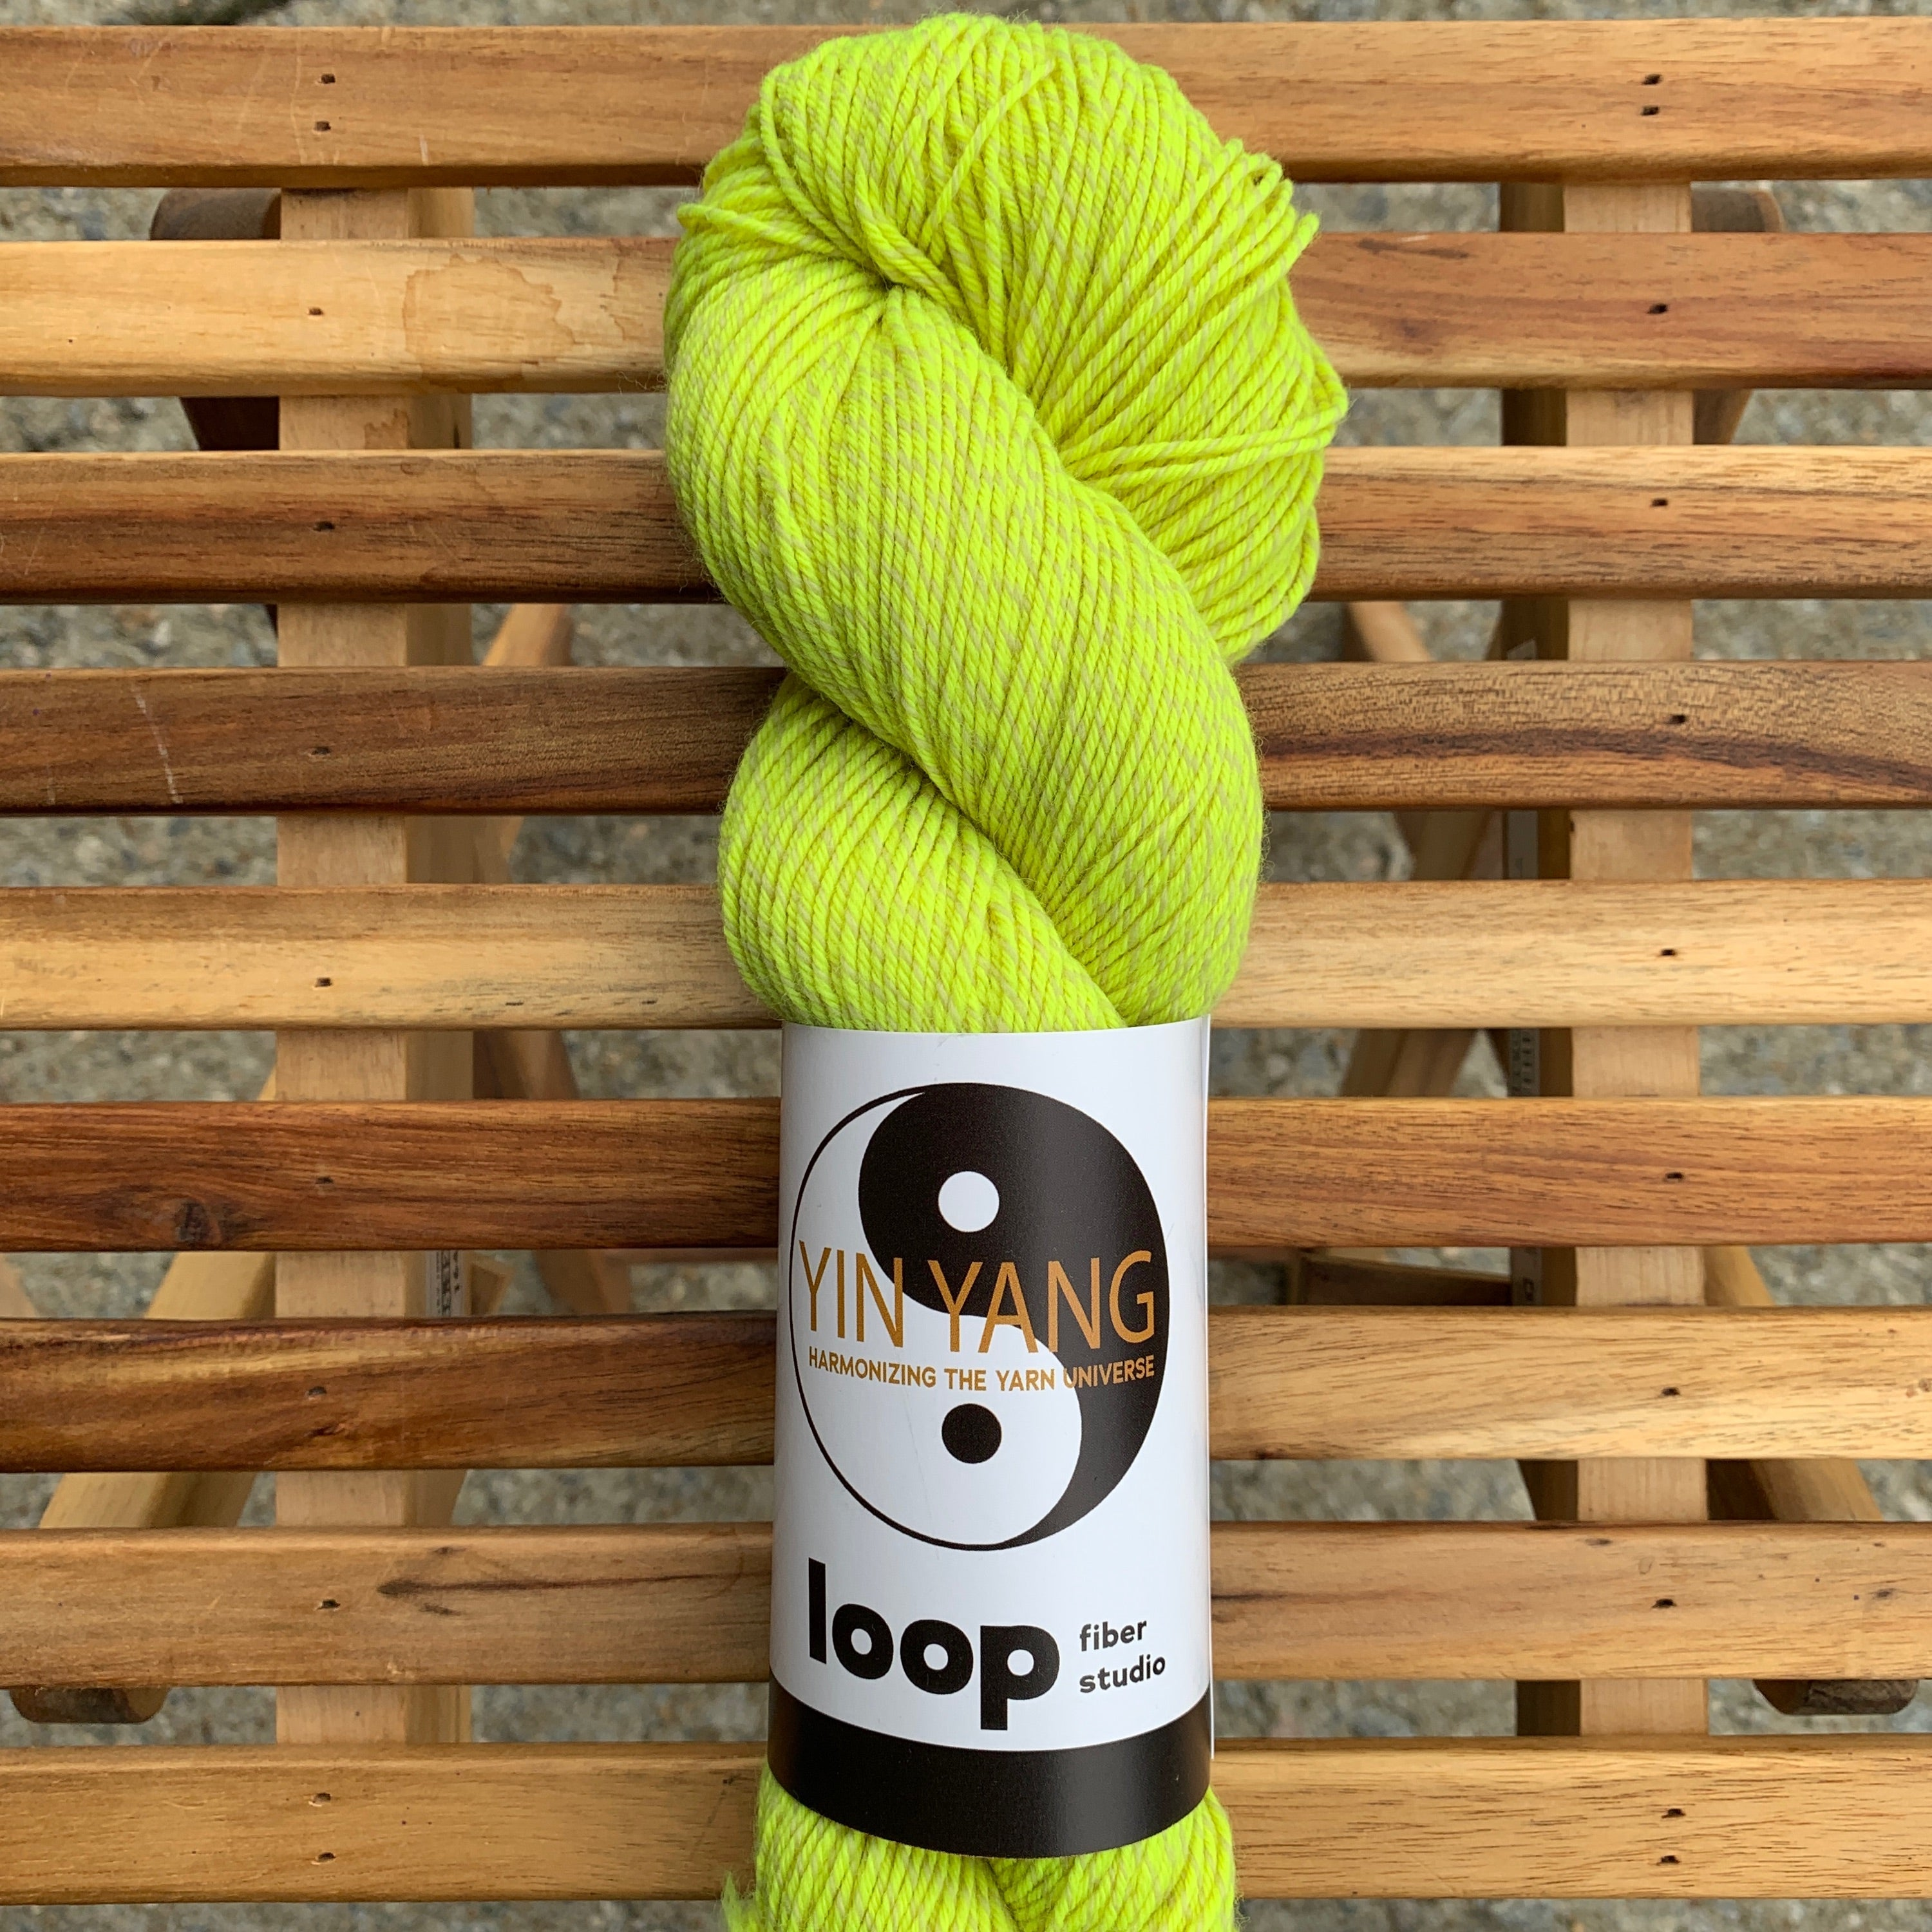 Loop Fiber Studio Yin Yang Fingering in Rise